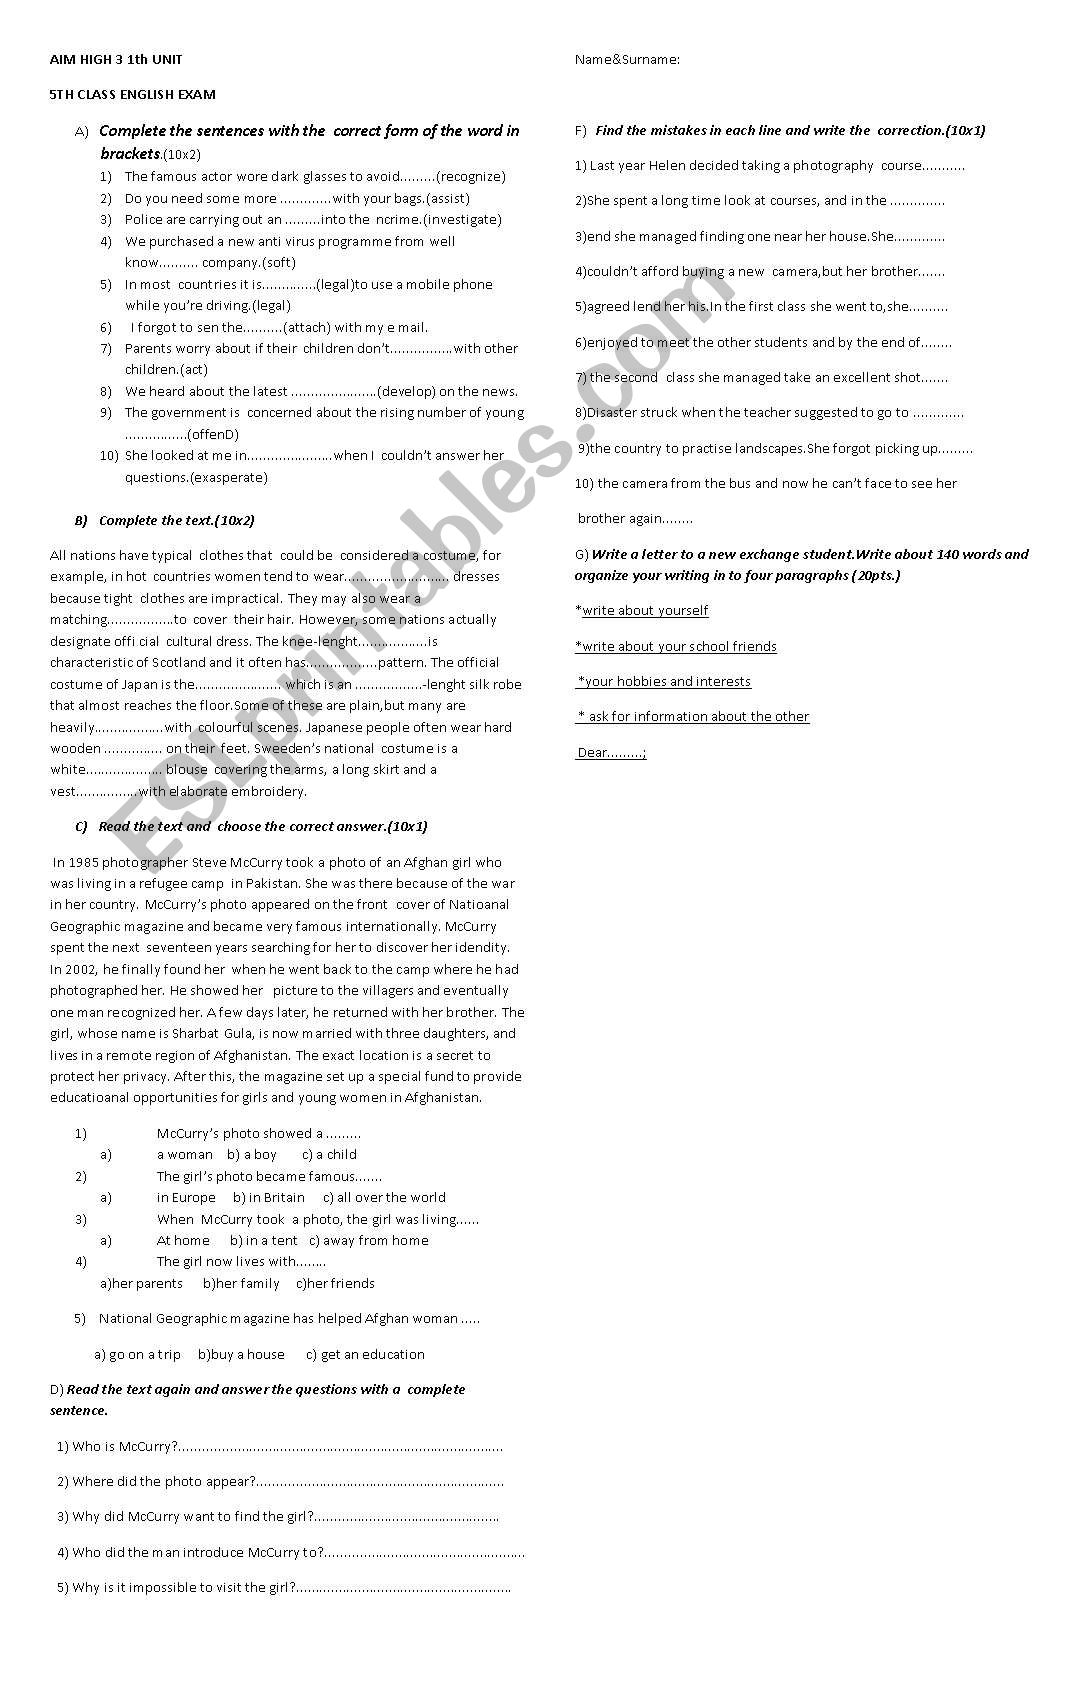 12 Best Images of Editing Worksheets For Middle   High as well  additionally English worksheets  AIM HIGH 3 UNIT 1 REVISION also Free Proofreading Worksheets Worksheet Proofreading Marks Free as well Verb Tenses Review Grammar Worksheets For Middle additionally Year 5 6 Spelling And Grammar Revision Worksheet Activity together with Mark Scheme For 9 1 Biology Revision Sheets Differentiated in addition  also Grammar Worksheets High Doc Info English Revision Pdf in addition Maths Revision And Worksheets For 9 1 Exam Question Practice Maths additionally KS3 summary revision worksheets 2jnbiuu besides High Punctuation Worksheets Copy Editing Practice Info further Editing Checklist Template S les r High School Pdf Self further Revision Worksheets Printable For High Freedom Struggle Of 2 further High Grammar Lessons Worksheets Tense Images Teaching Gr On as well Editing And Proofreading Worksheets Middle Grammar Sion For. on revision worksheets for high